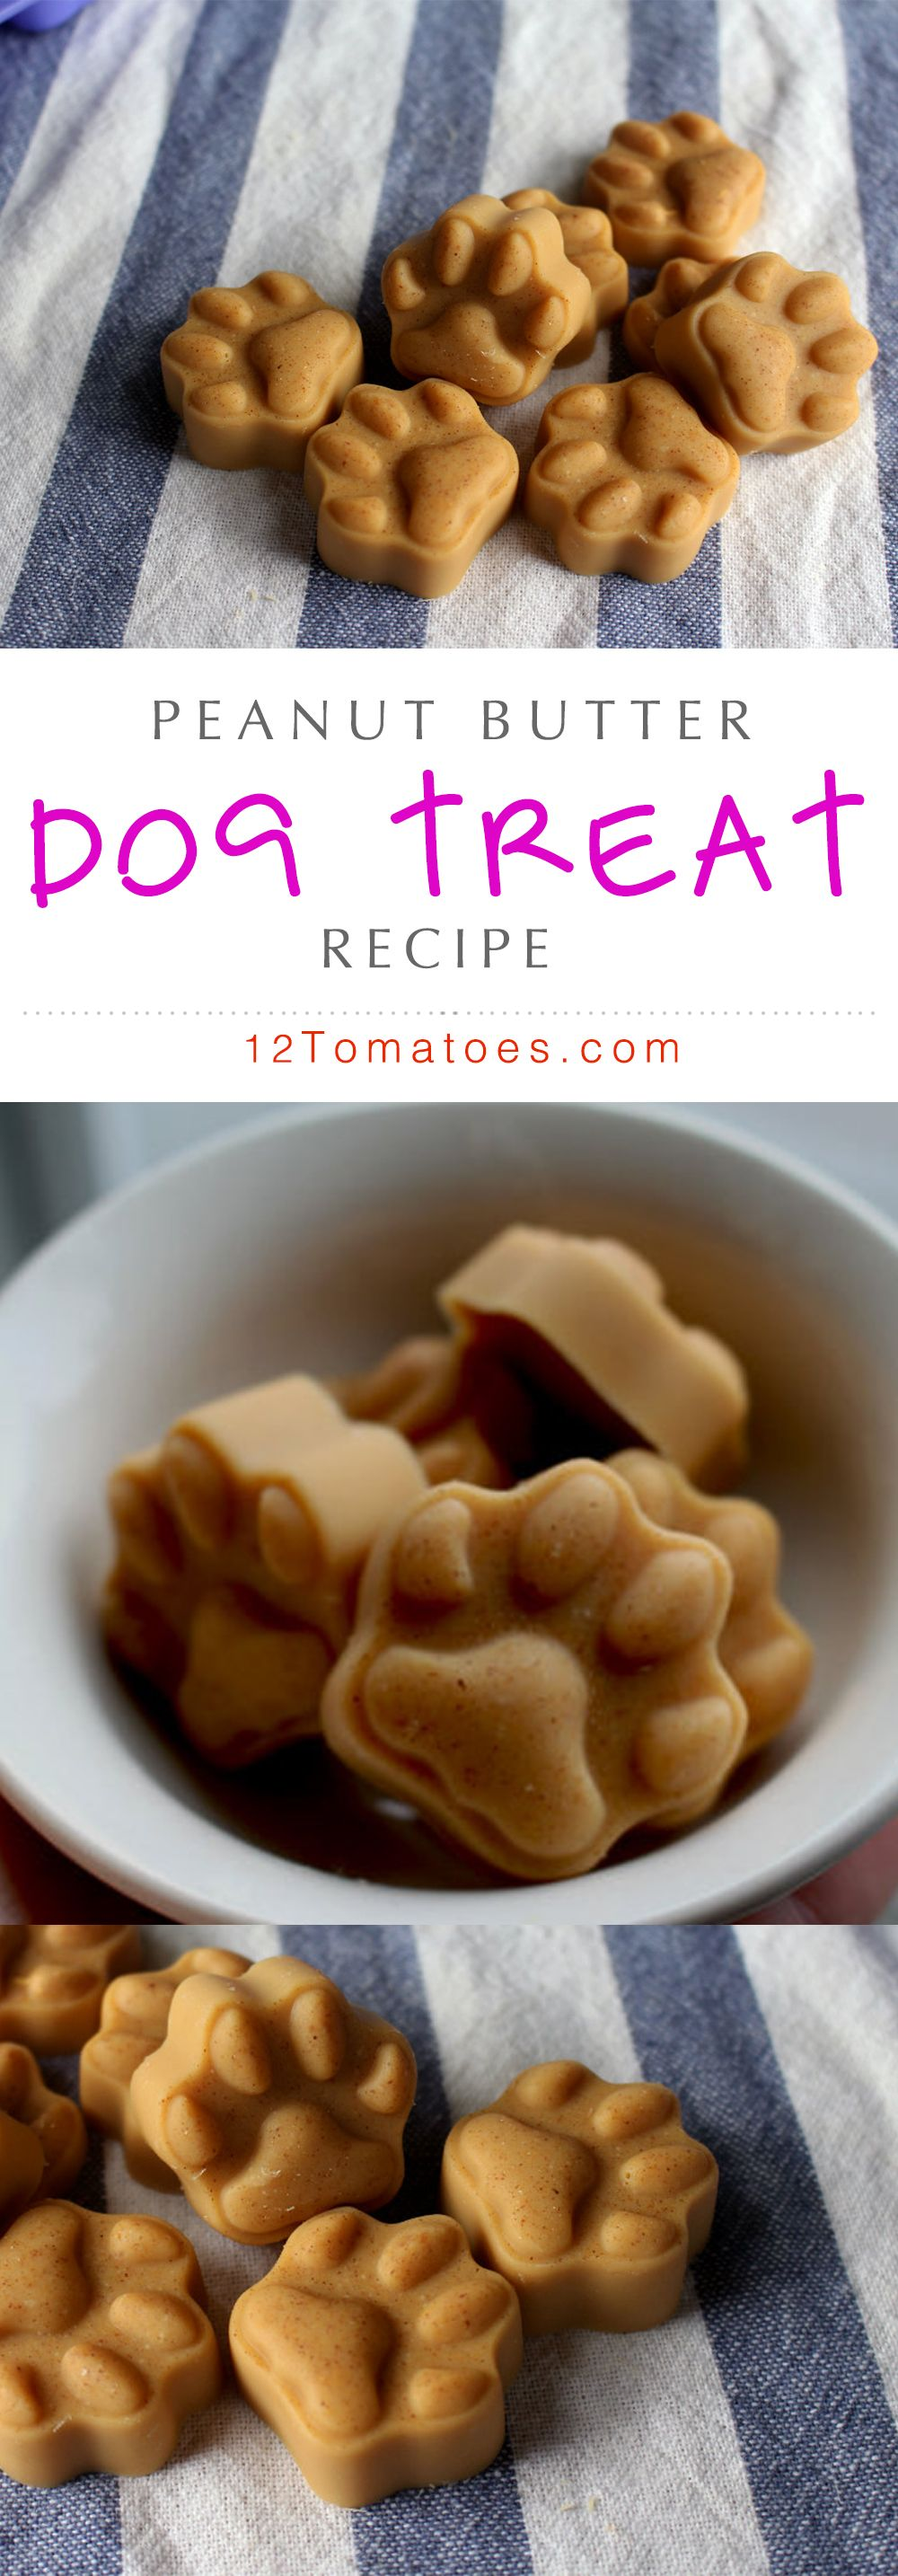 When it comes to our pets, there's not much we wouldn't give them…we just want them to have the best and be the healthiest they can be. Because of this, we recently started making our own dog treats; there's something about knowing exactly what's going into them that gives us peace of mind, and these peanut butter coconut oil treats are our new favorites – they're just so good for our (not so) little fur babies!!